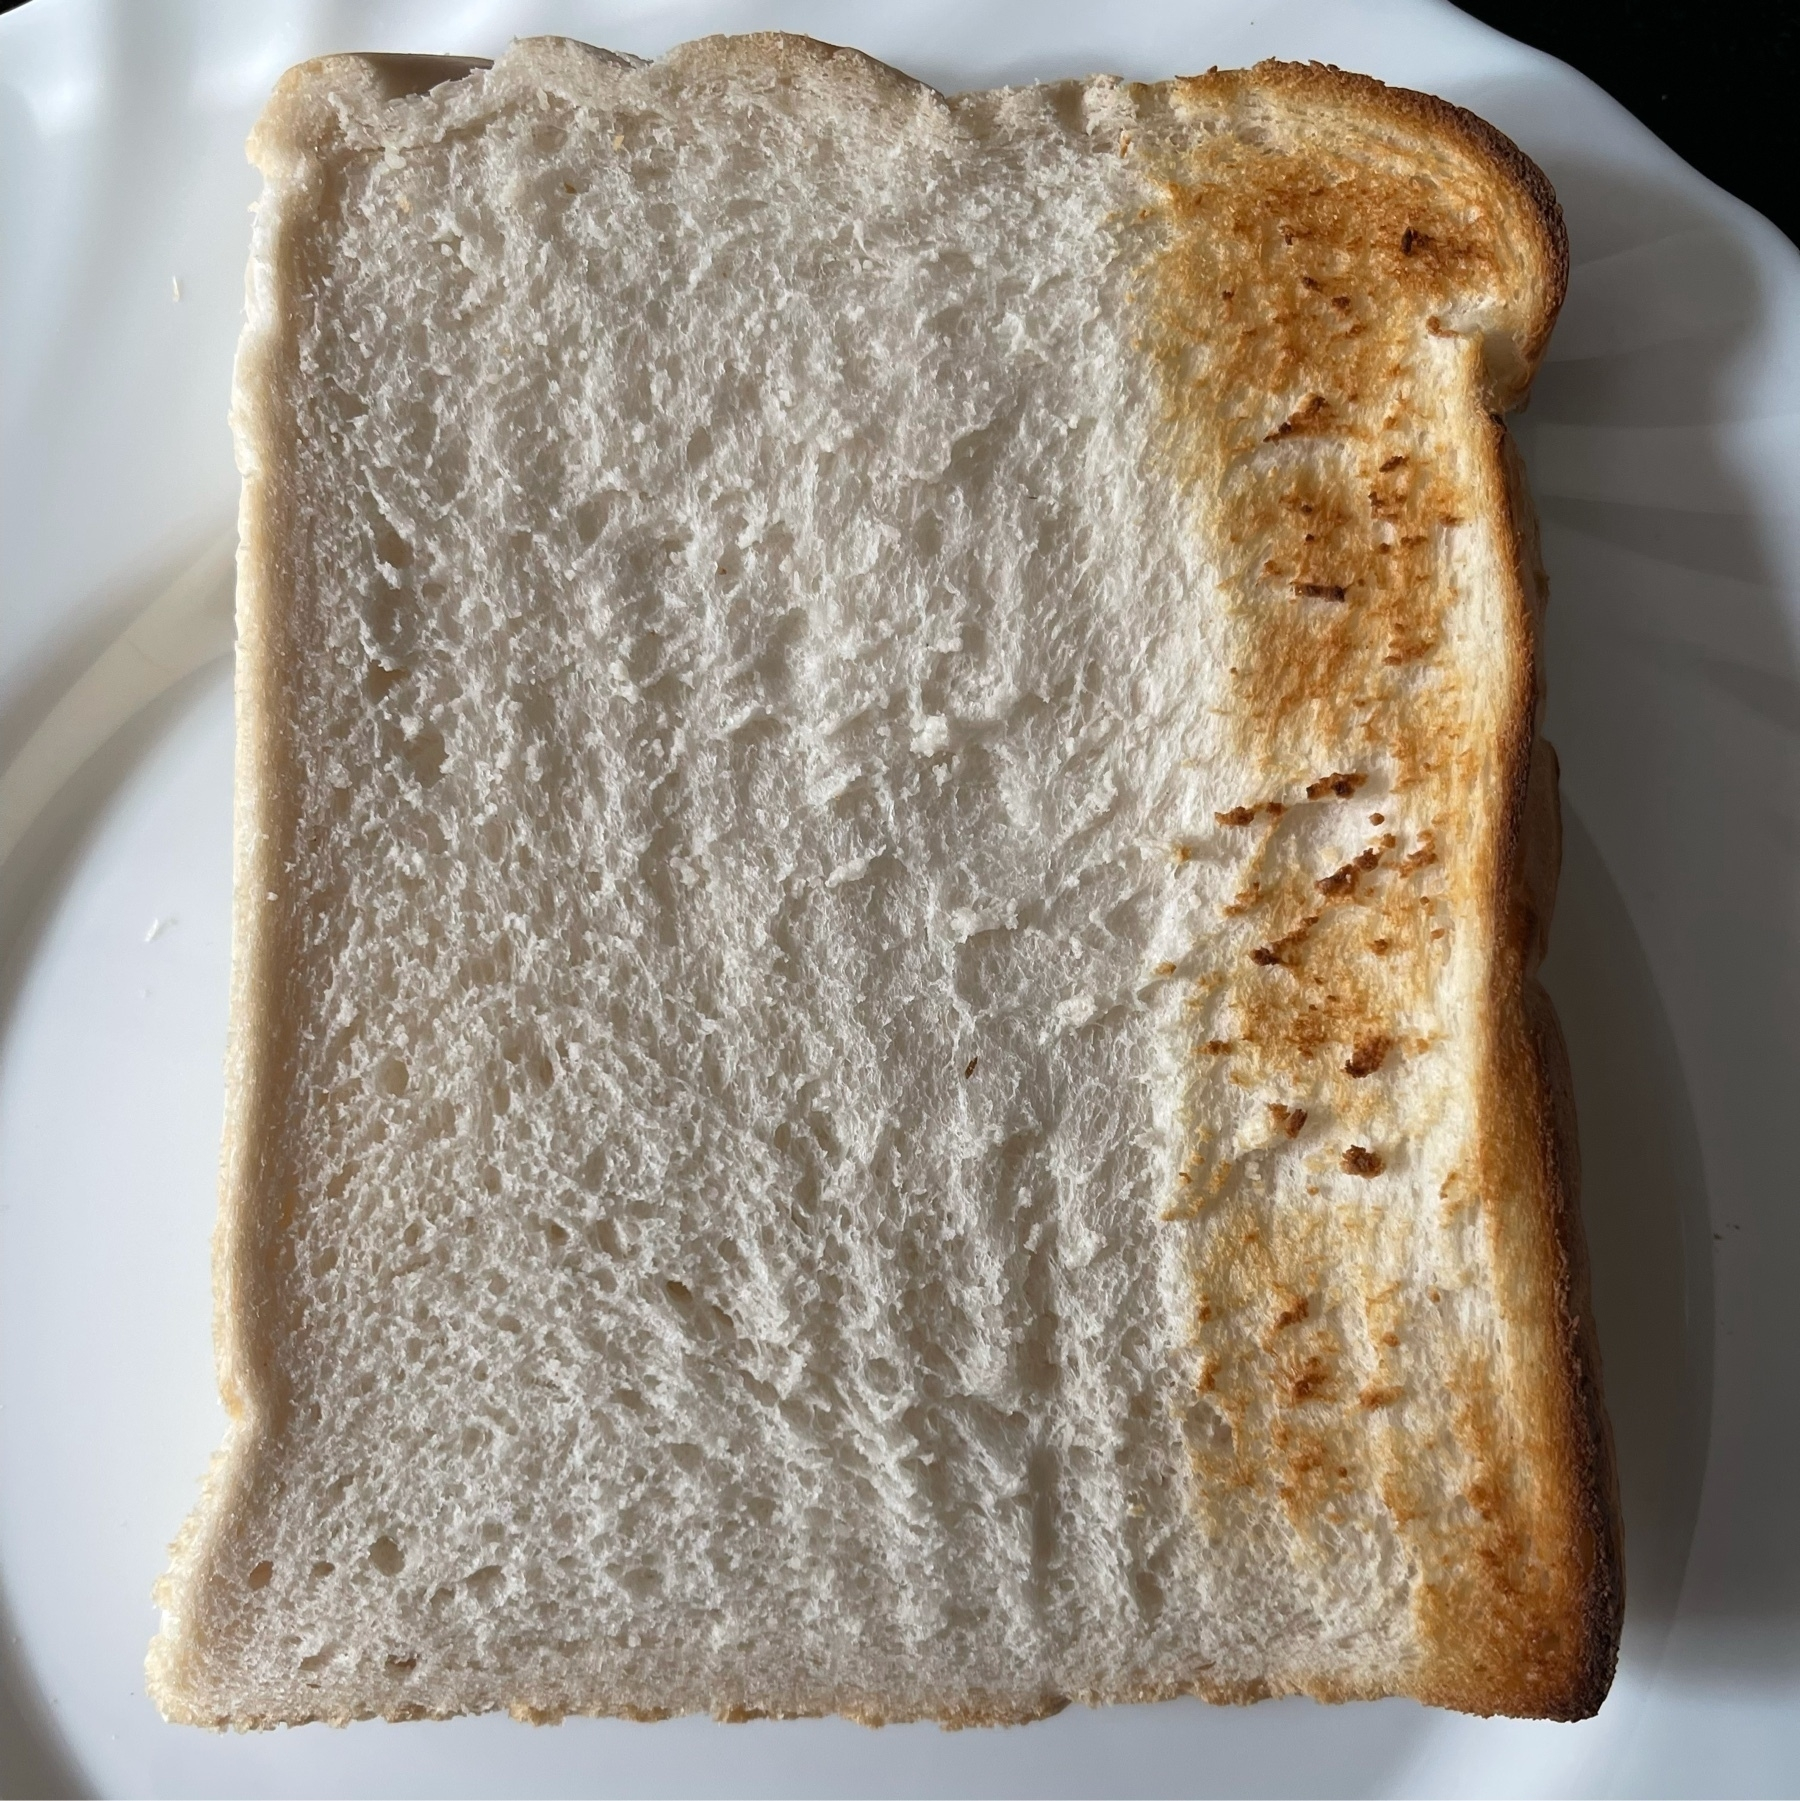 Photo of a slice of bread, with a small part toasted on one side.